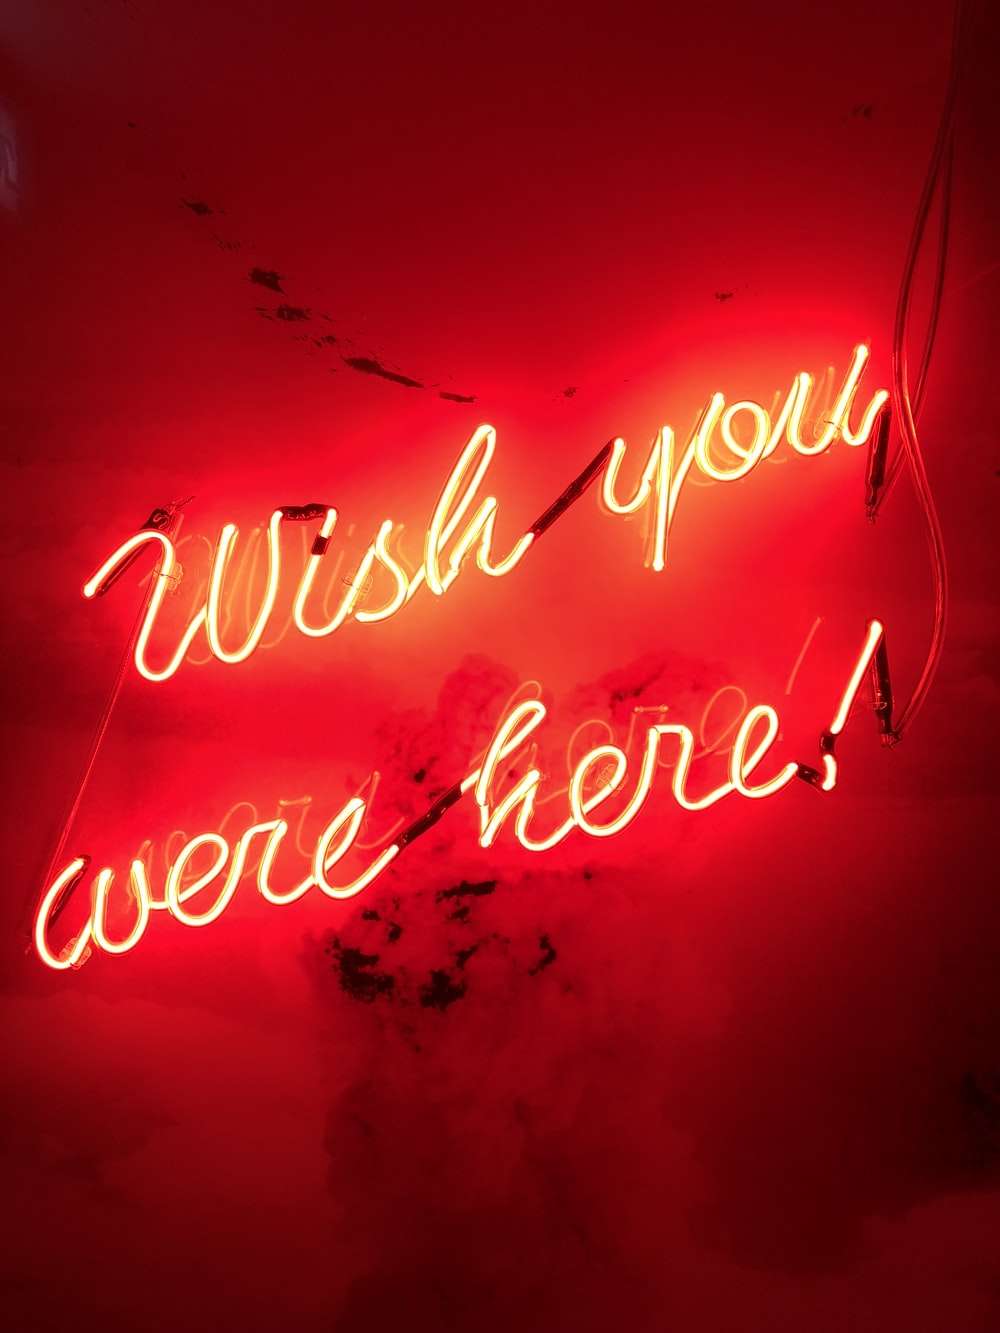 yellow wish you were here! neon sign